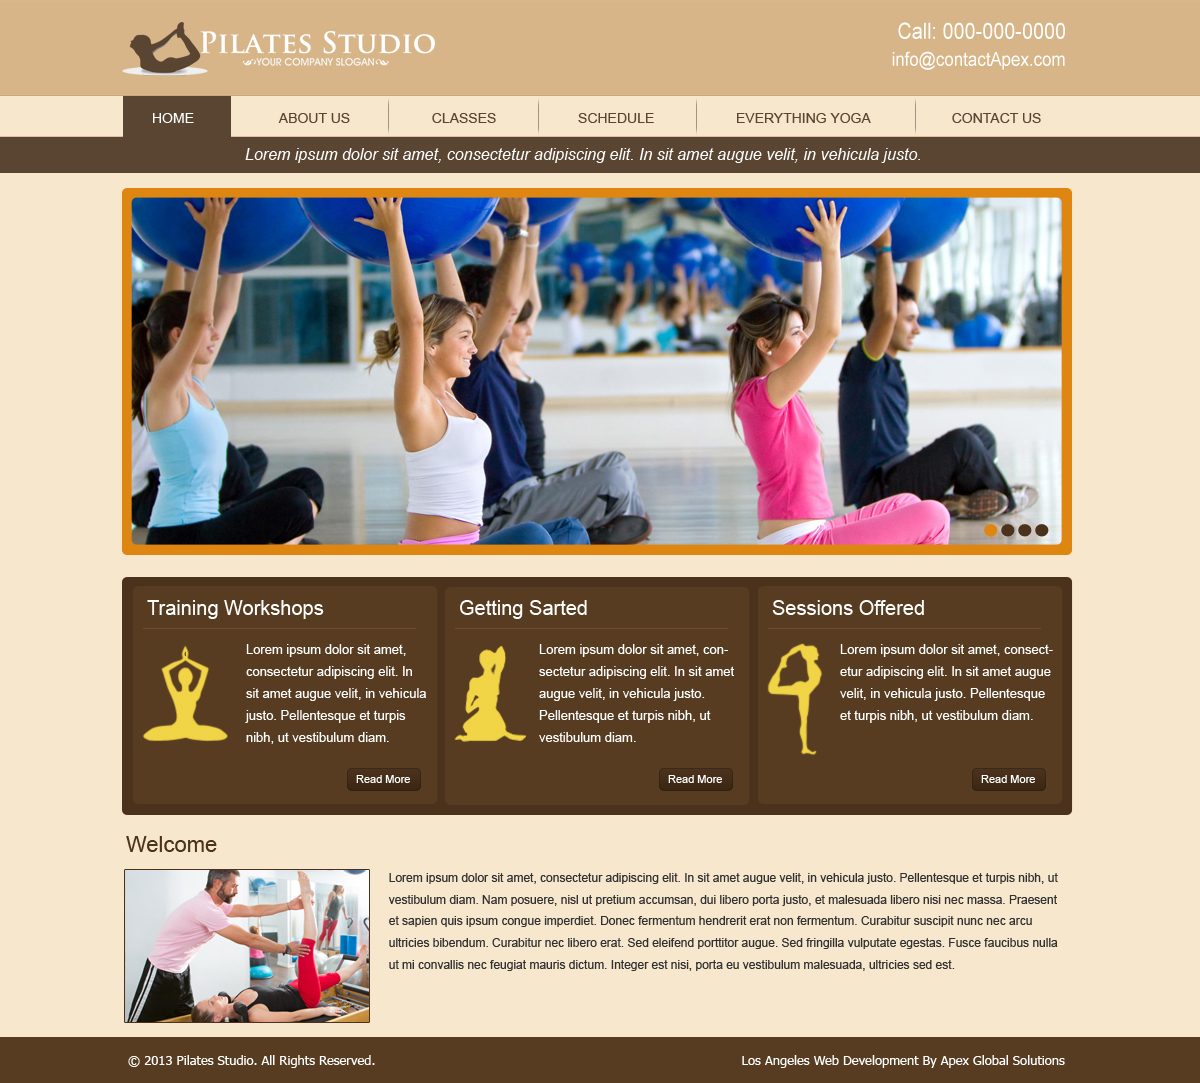 Pilates Studio Website Design | Pilates Web Design and Development